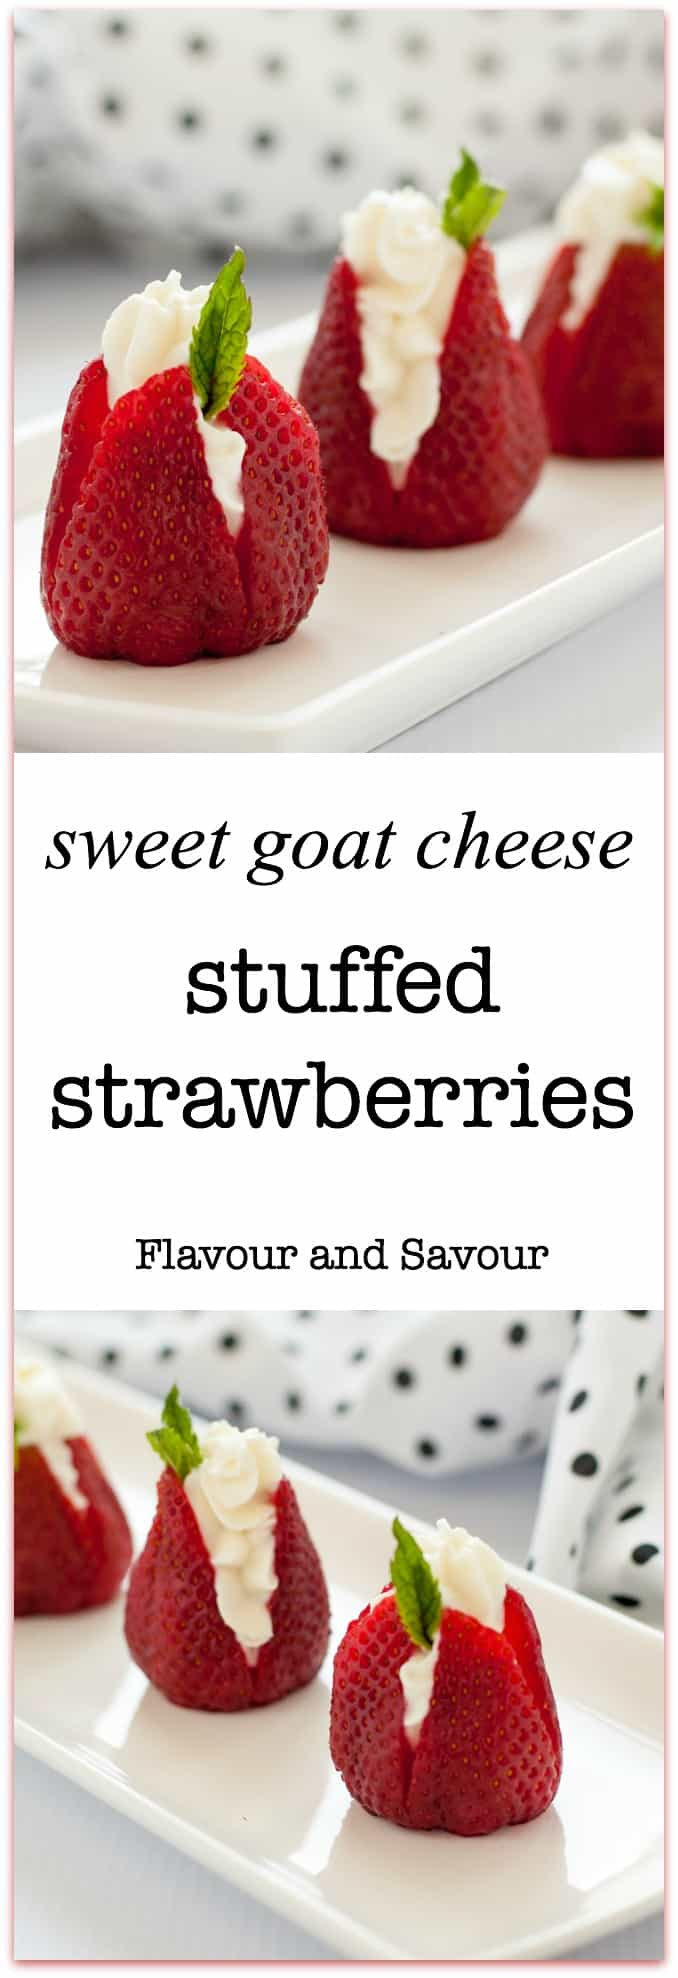 Sweet Goat Cheese Stuffed Strawberries make an easy appetizer to celebrate strawberry season. You only need 4 ingredients and 5 minutes to whip these up.